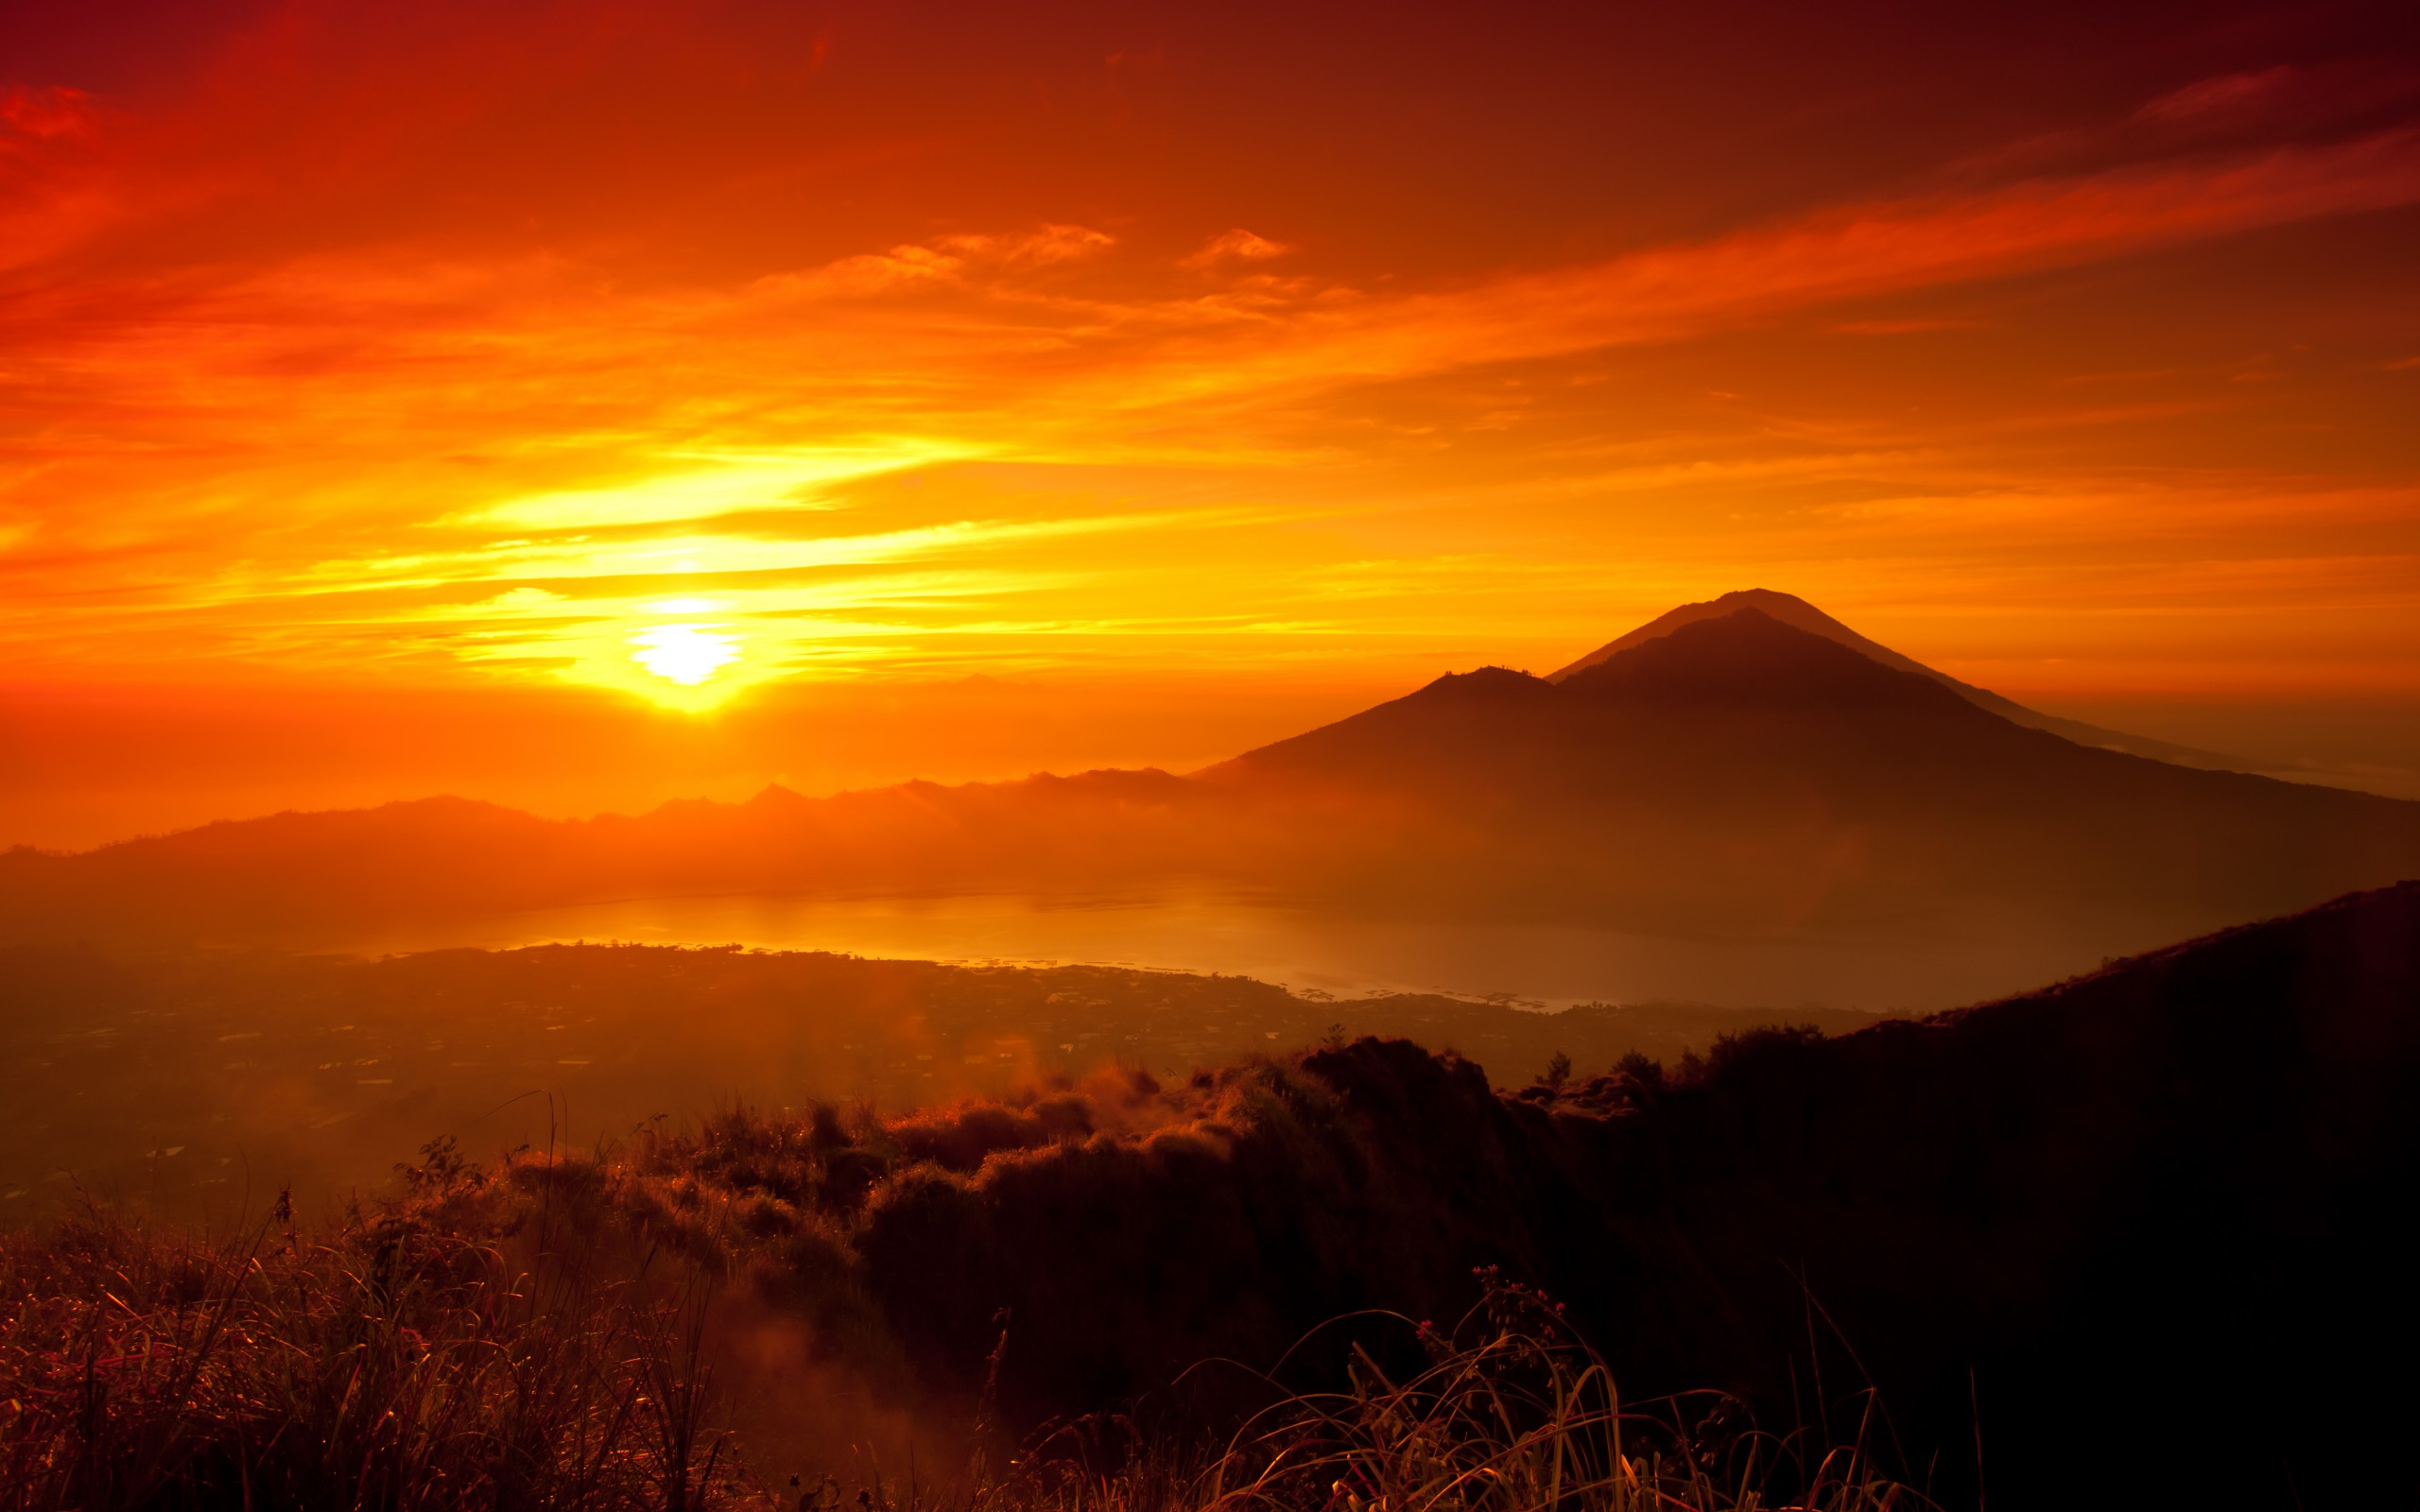 sunrise pictures free - HD 1920×1080